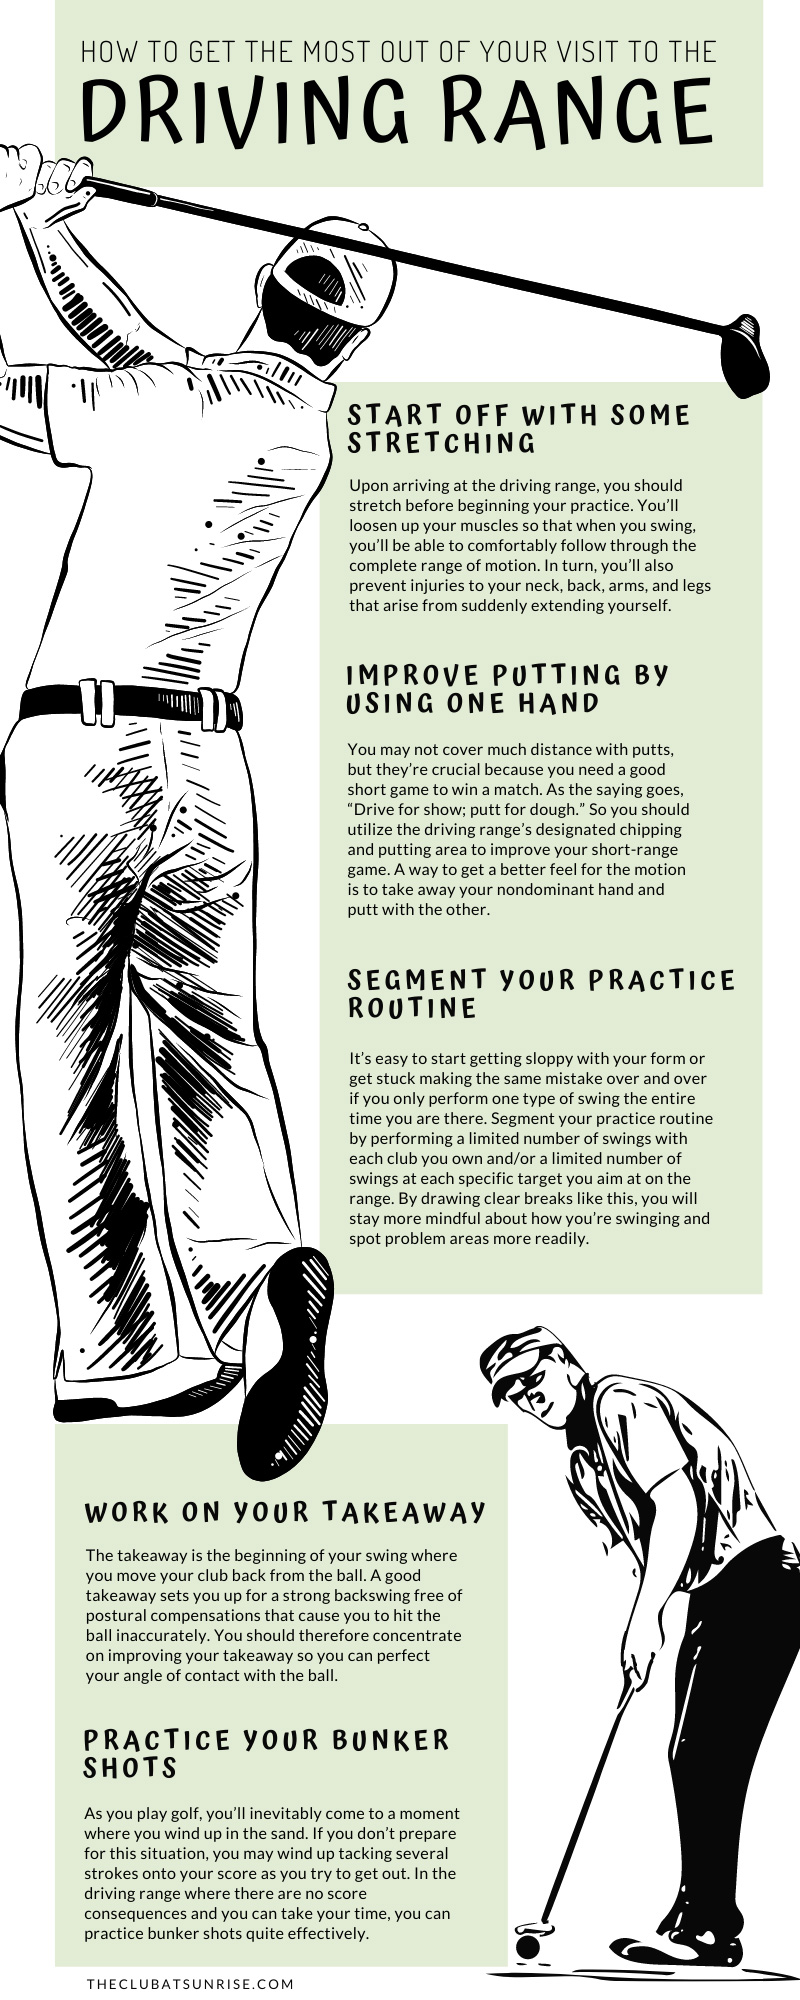 How to Get the Most Out of Your Visit to the Driving Range Infographic